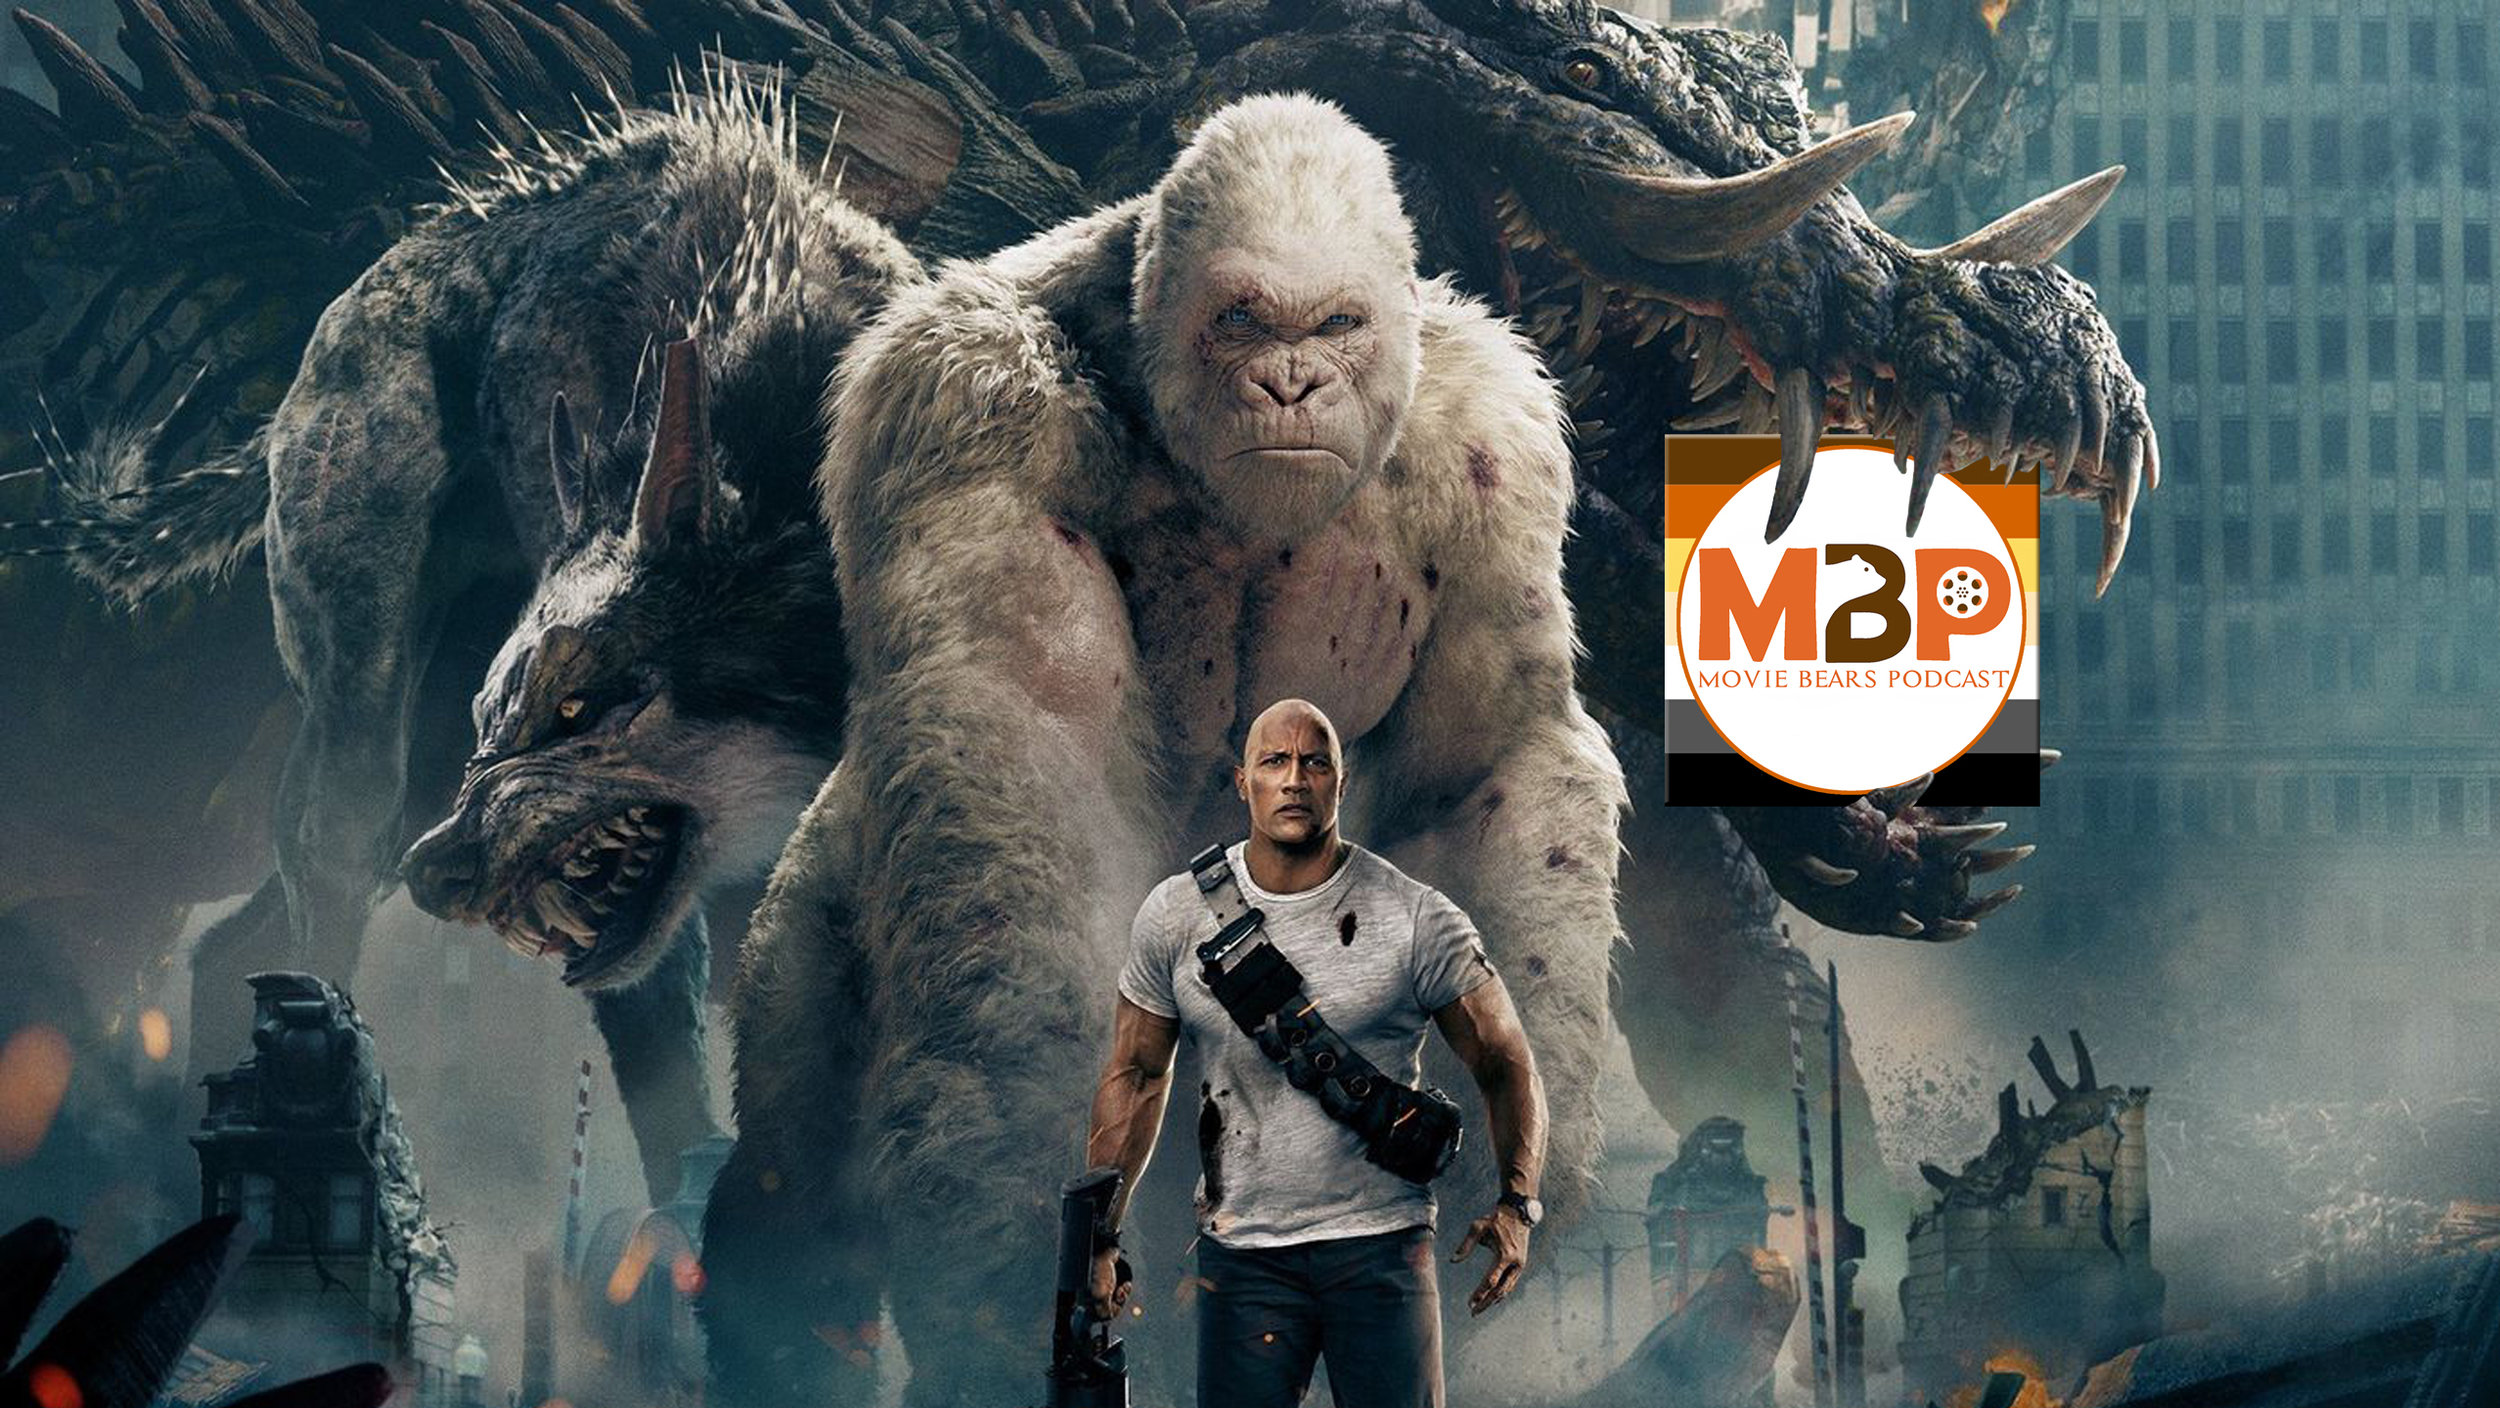 MBP e279 - 'Rampage' (4/20/18)    George and Lizzie and Ralph from the classic arcade game make their film debut in 'Rampage,' the building-crushing and mayhem heavy action flick starring Dwayne Johnson. Did this one crush it? Or did it leave us feeling crushed? Listen to this week's review to find out!